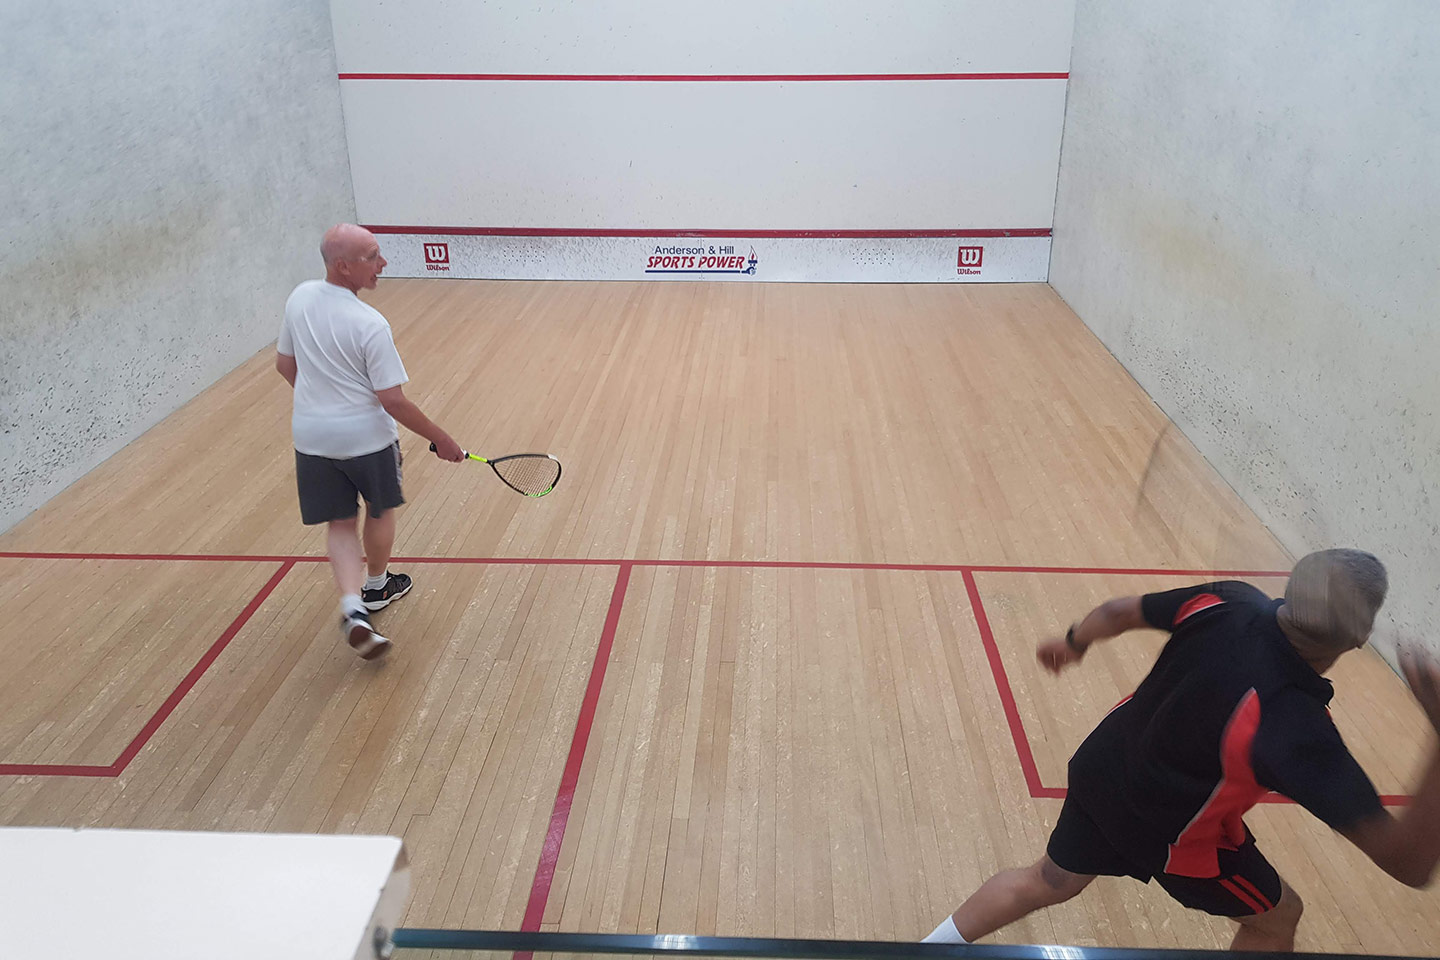 https://www.chchfootballsquash.co.nz/wp-content/uploads/2021/04/all-levels.jpg